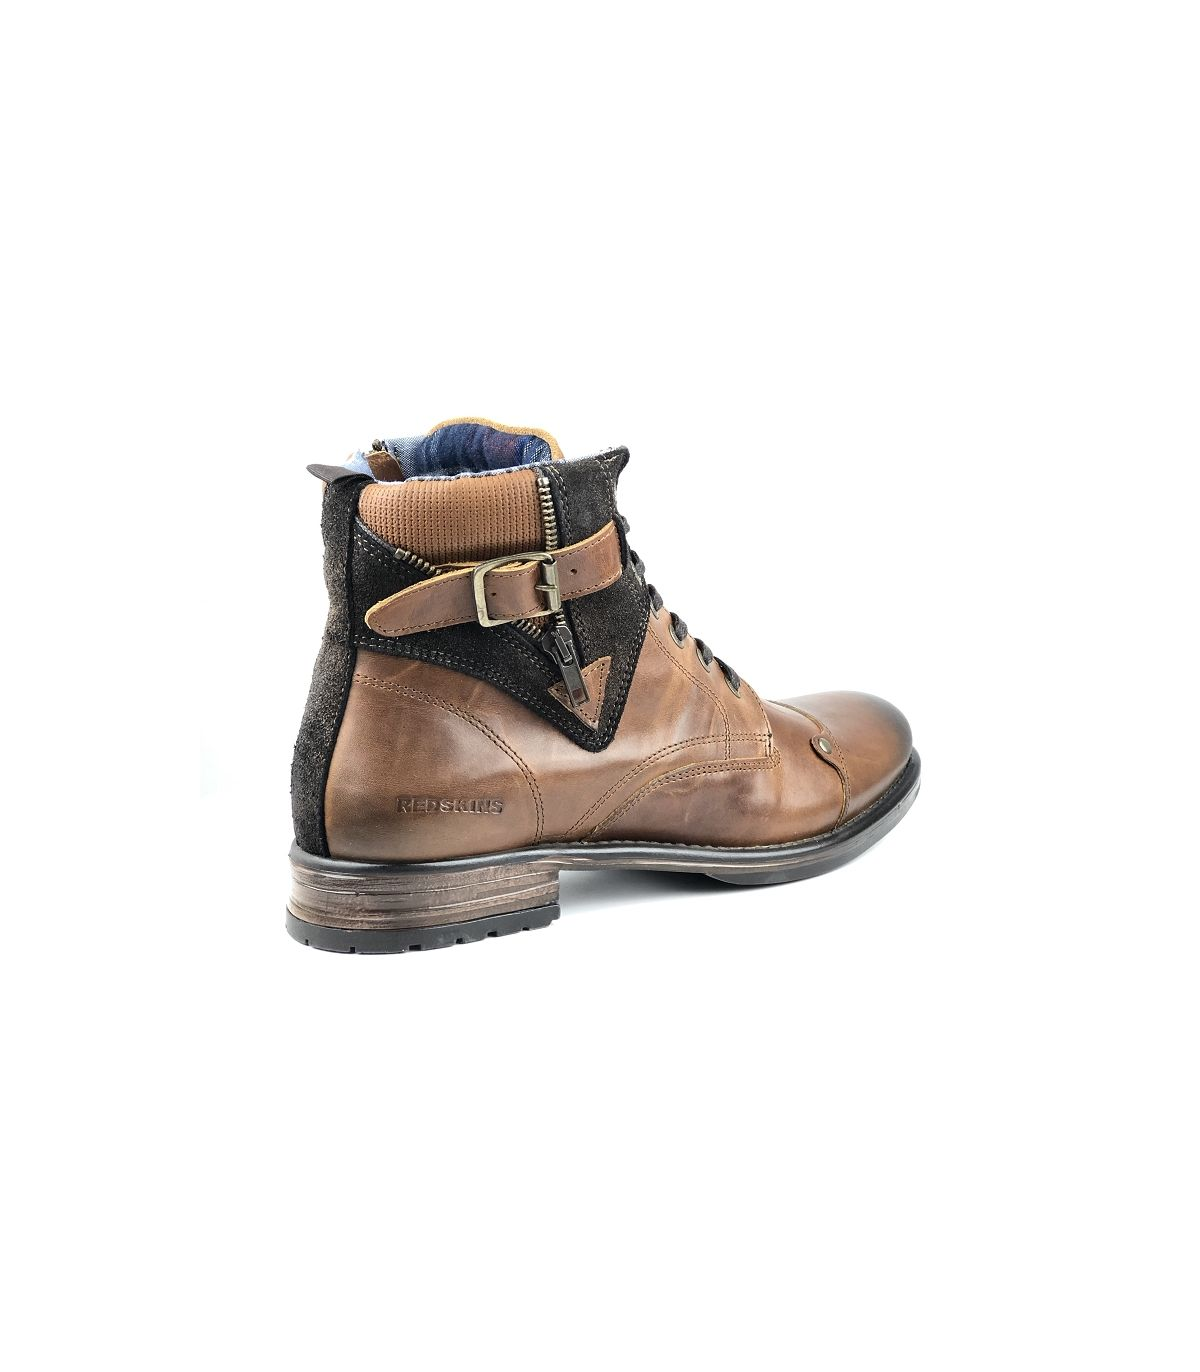 Cuir Chaussures CognacUnivers Chaussures Homme Redskins droCxBWe